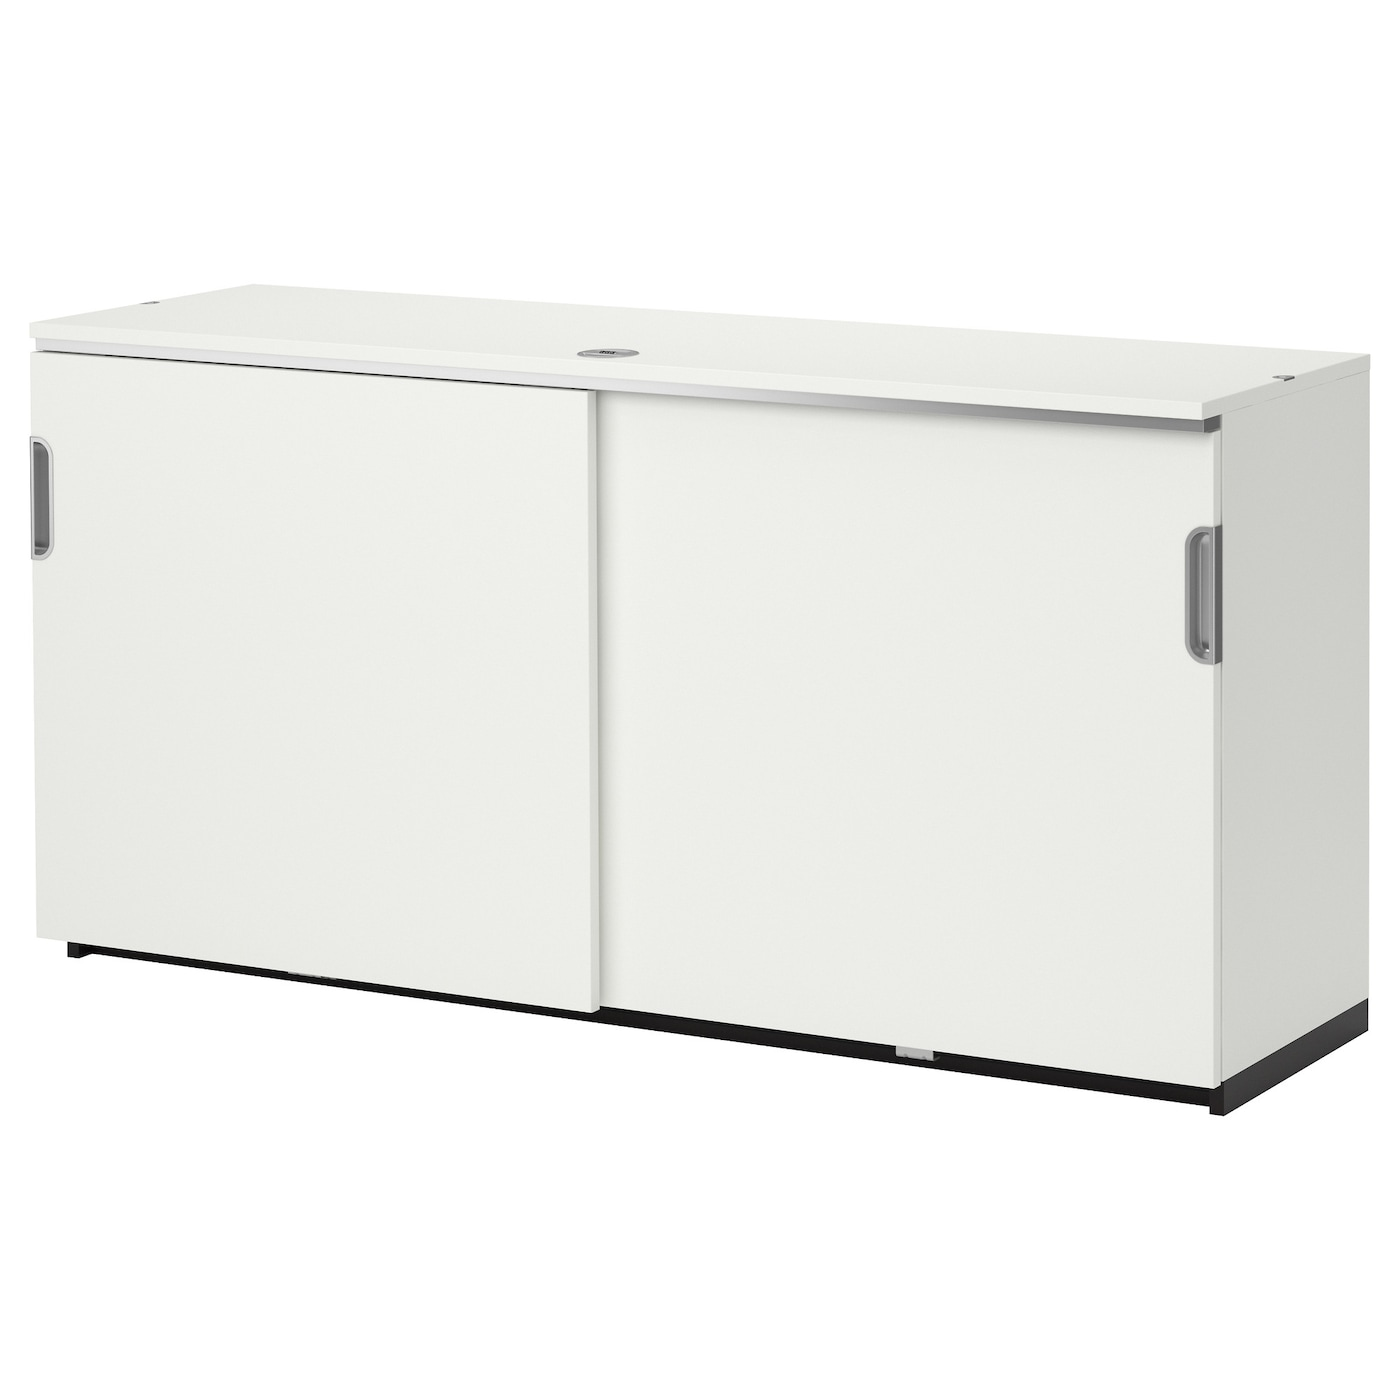 ikea office storage uk. modren ikea ikea galant cabinet with sliding doors integrated damper makes close  silently and gently in ikea office storage uk e